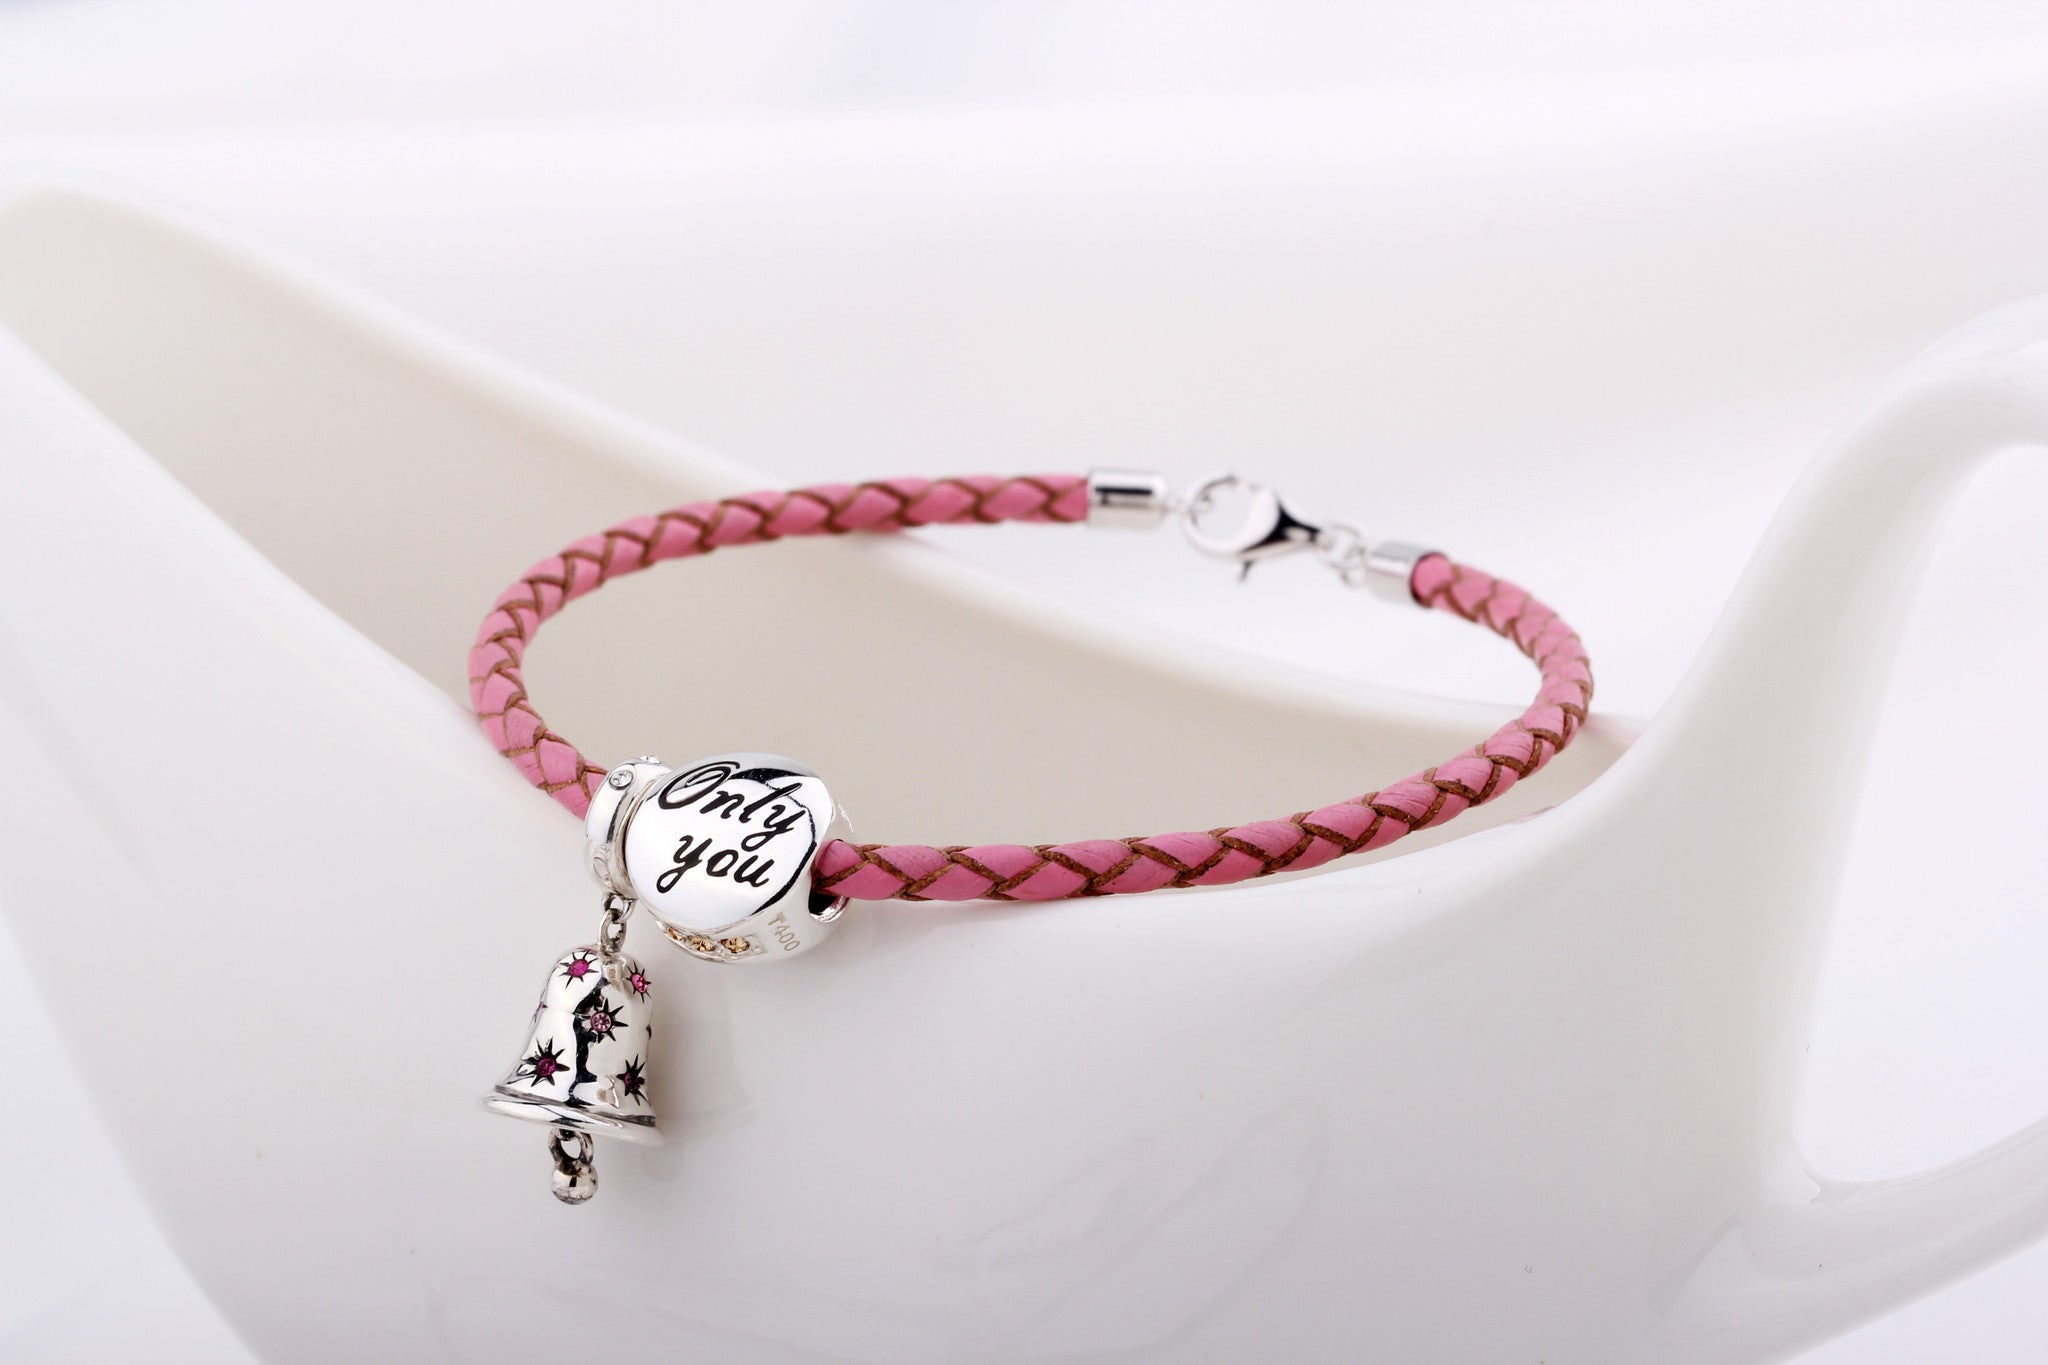 Genuine cow leather charm bracelets – selec fashion